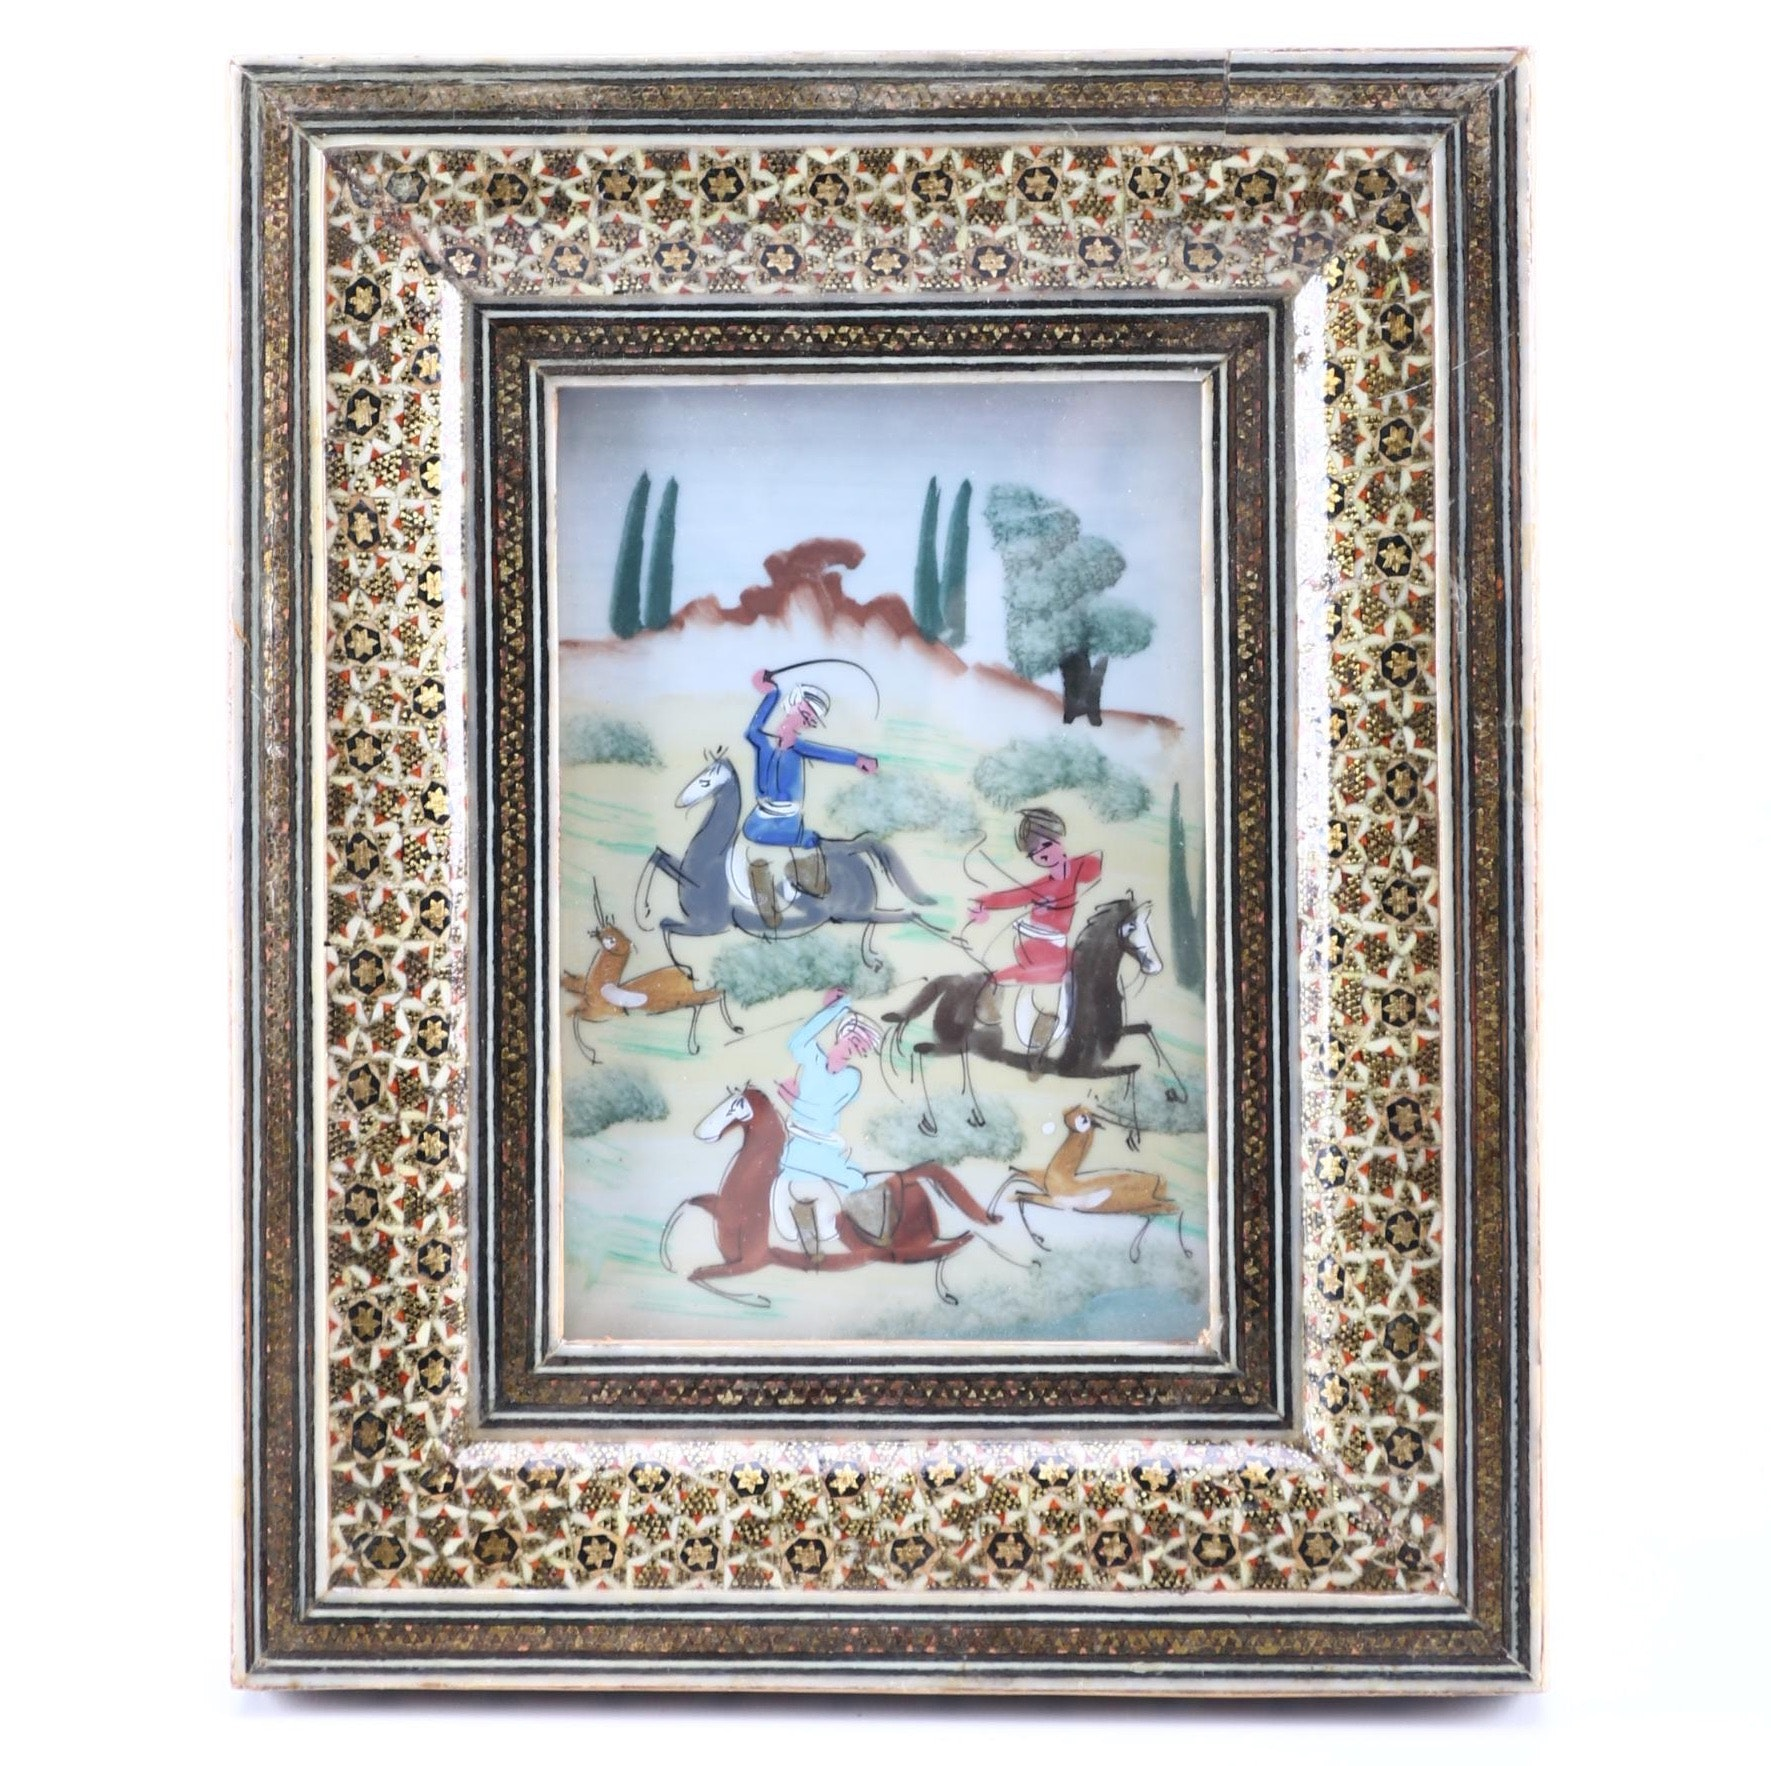 Hand Painted Indo-Persian Porcelain Tile of Mounted Hunters in an Ornate Inlay Frame